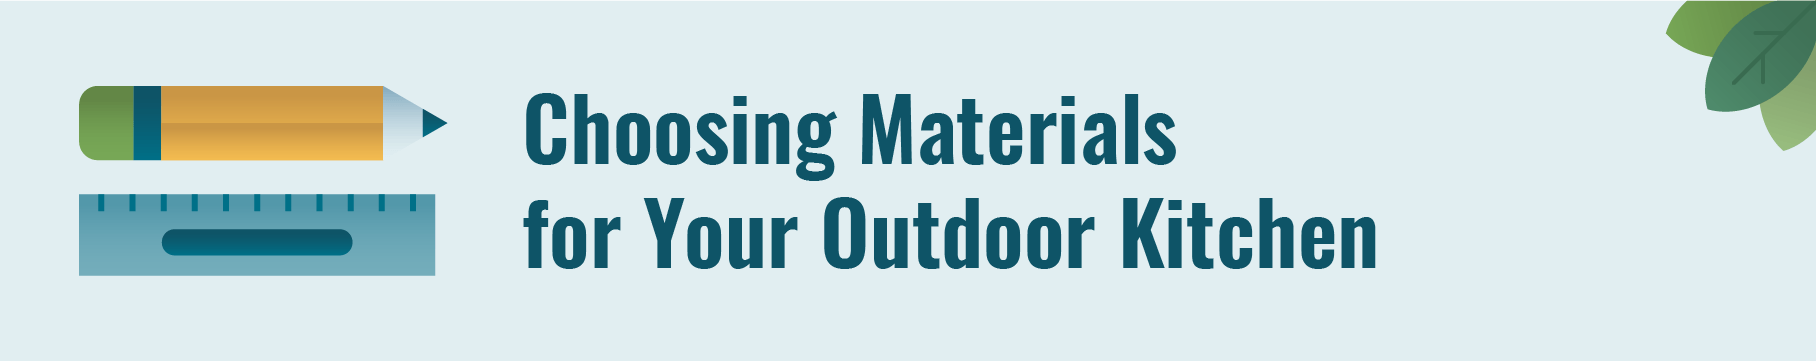 Choosing materials for your outdoor kitchen